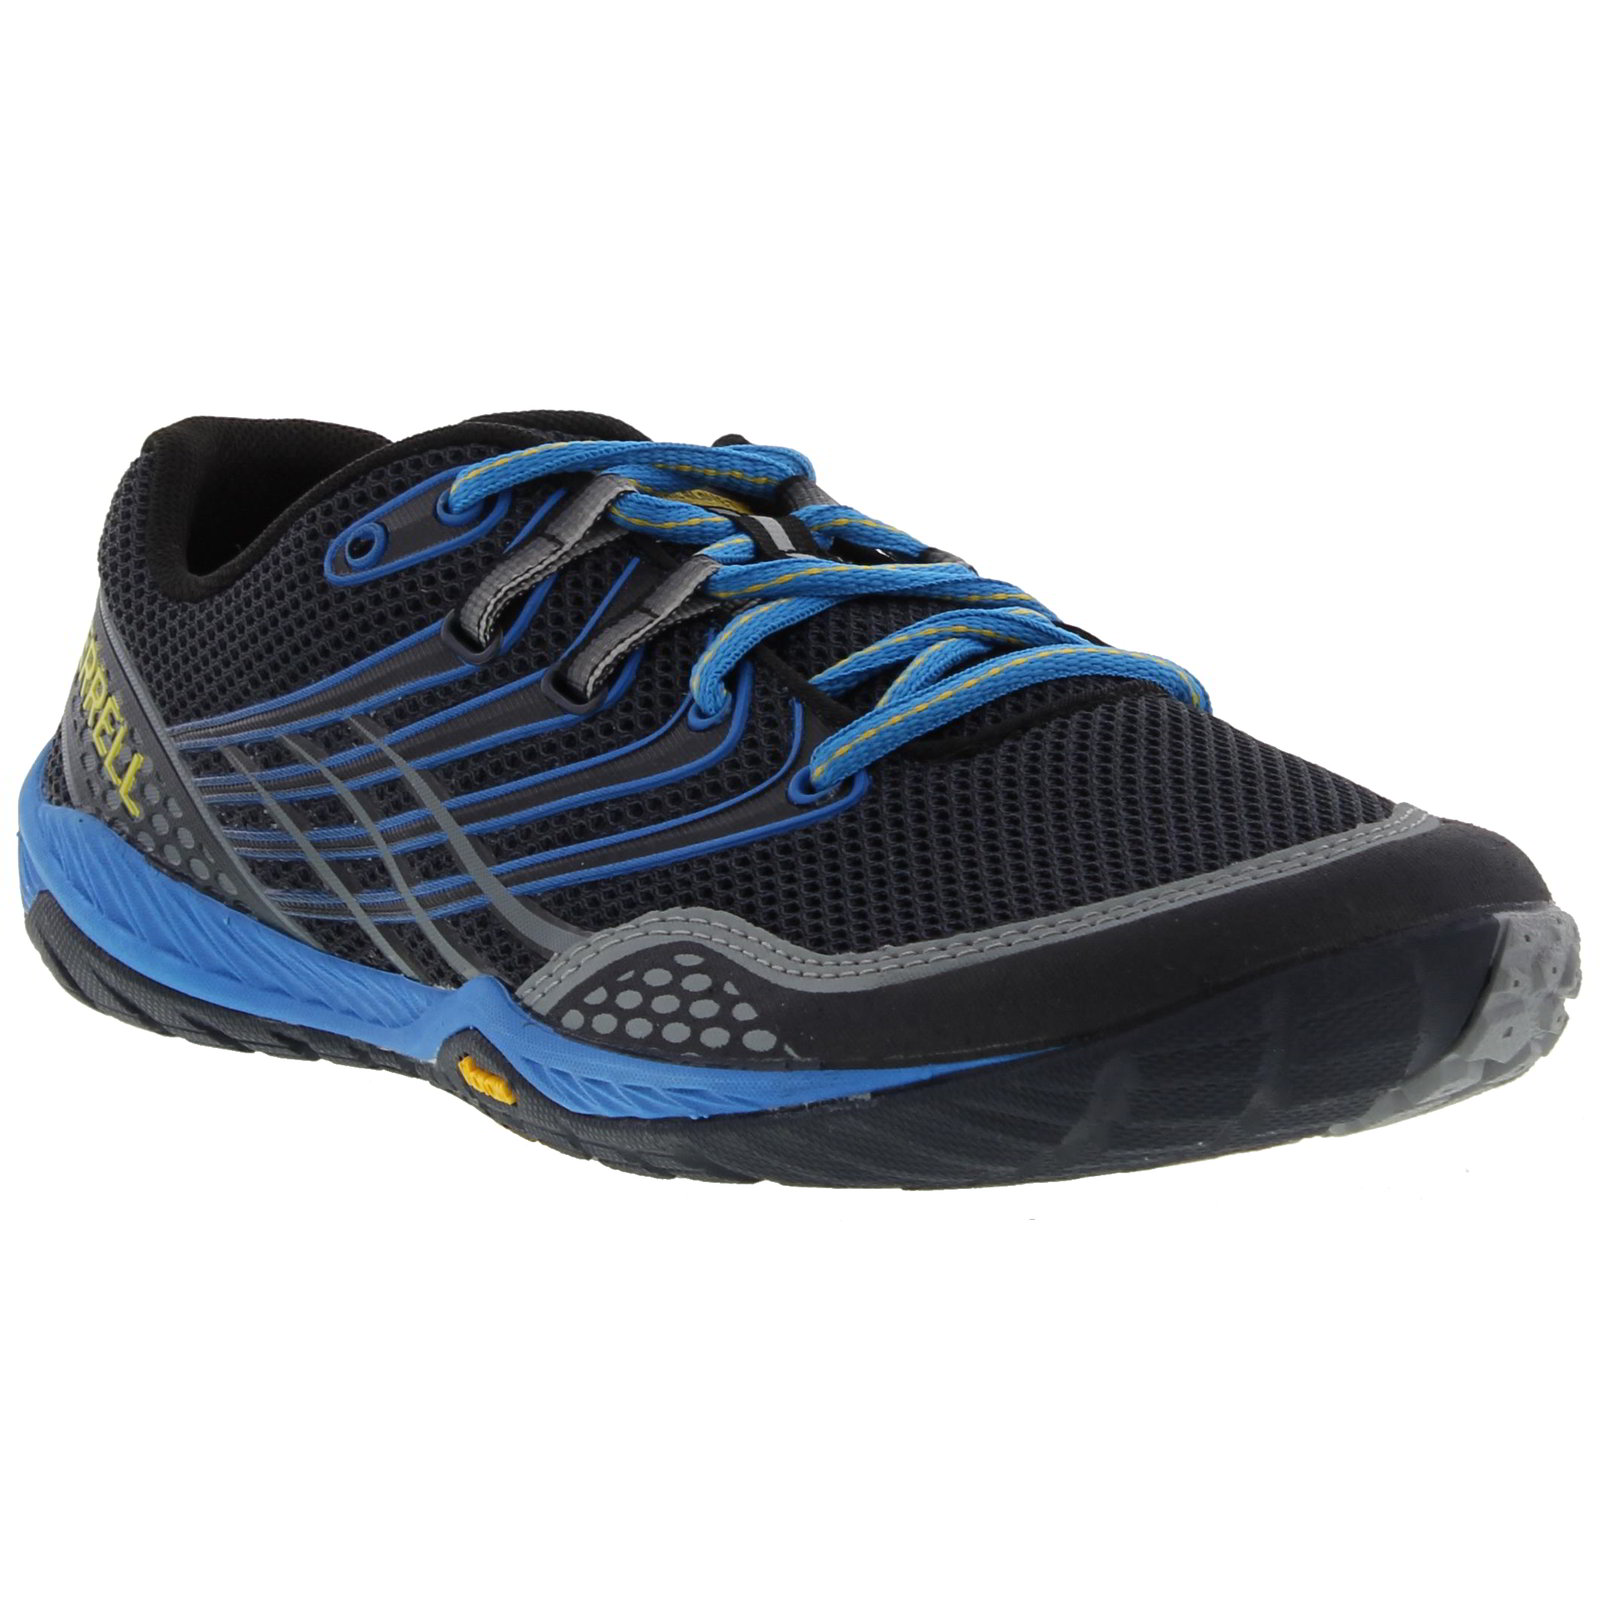 merrell trail glove 3 mens trail running shoes size 8 11. Black Bedroom Furniture Sets. Home Design Ideas